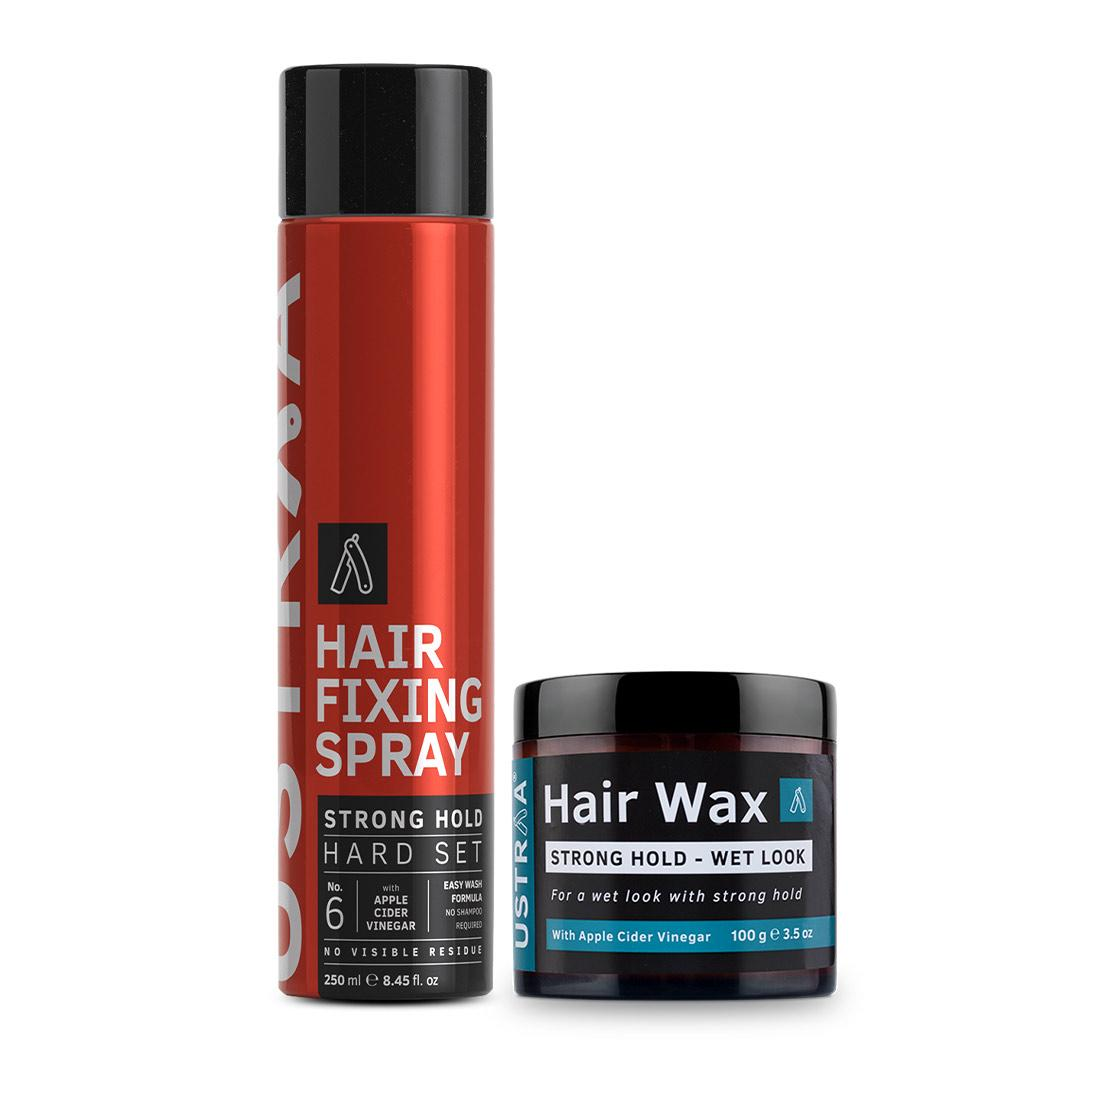 Ustraa Hair Styling Kit For Men (Wet Look): Hair Wax and Hair Fixing Spray